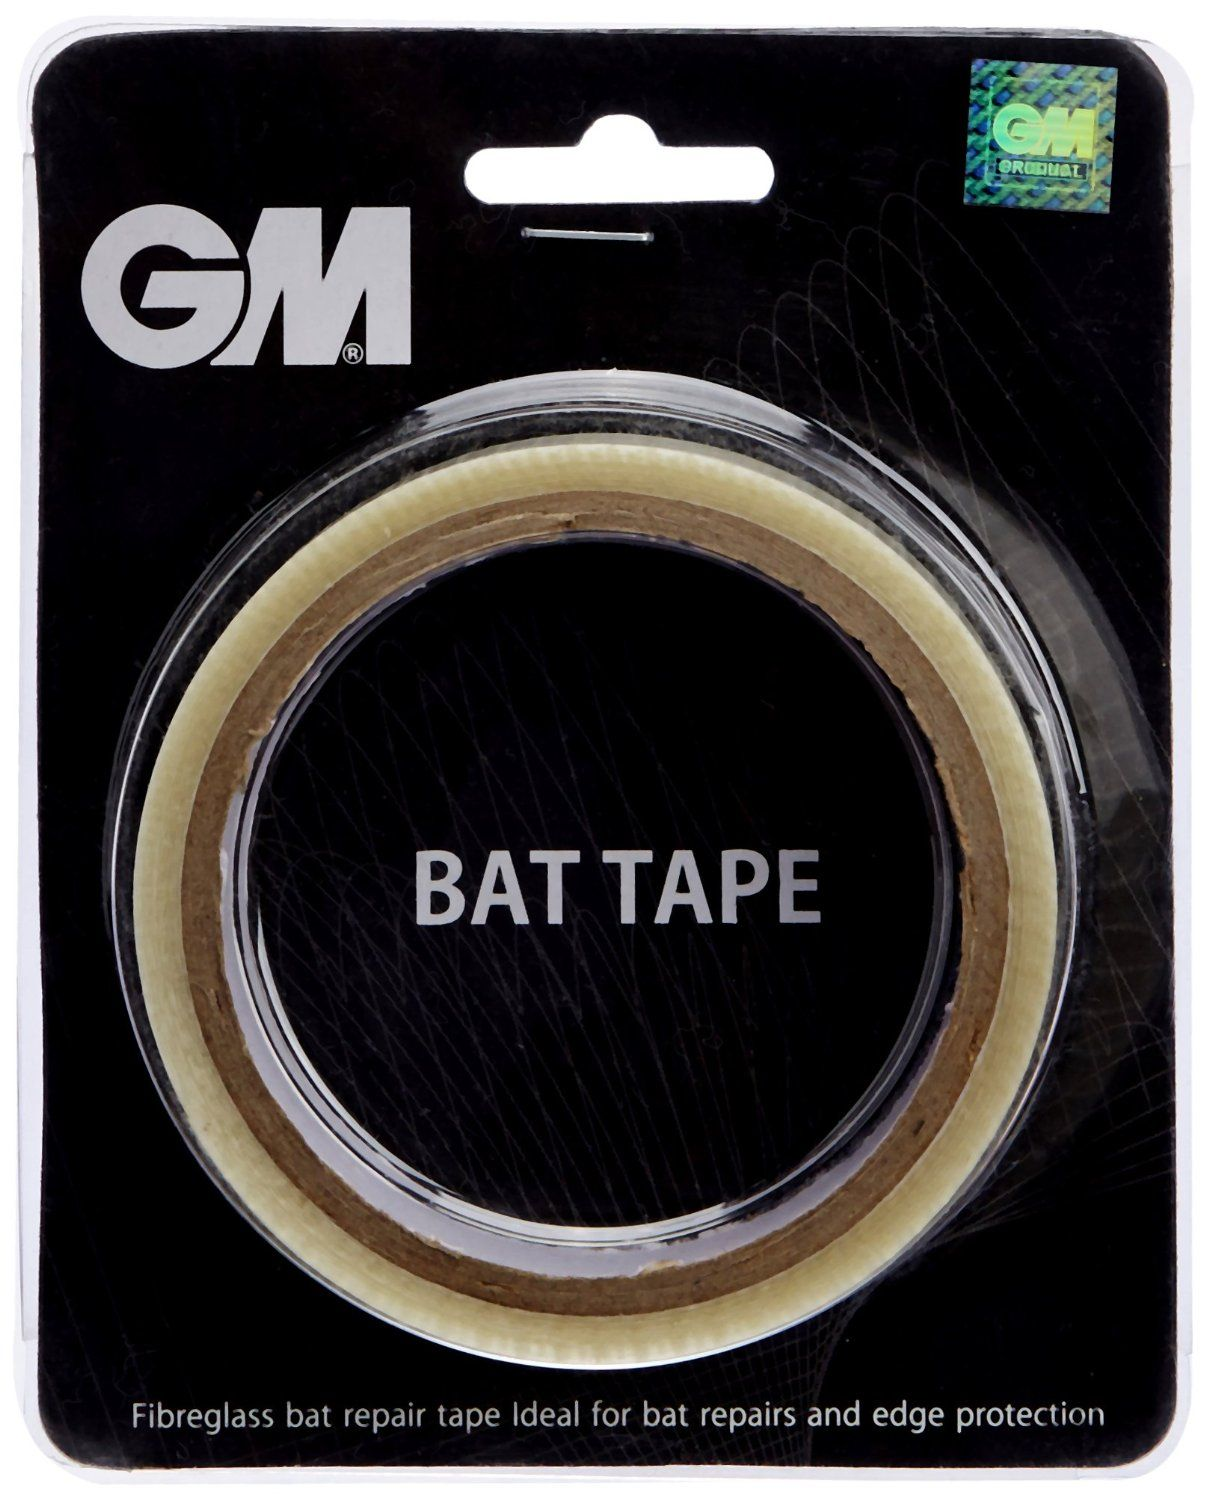 Buy GM Glass Fibre Bat Tape, 25mmX10m Online at Low Prices